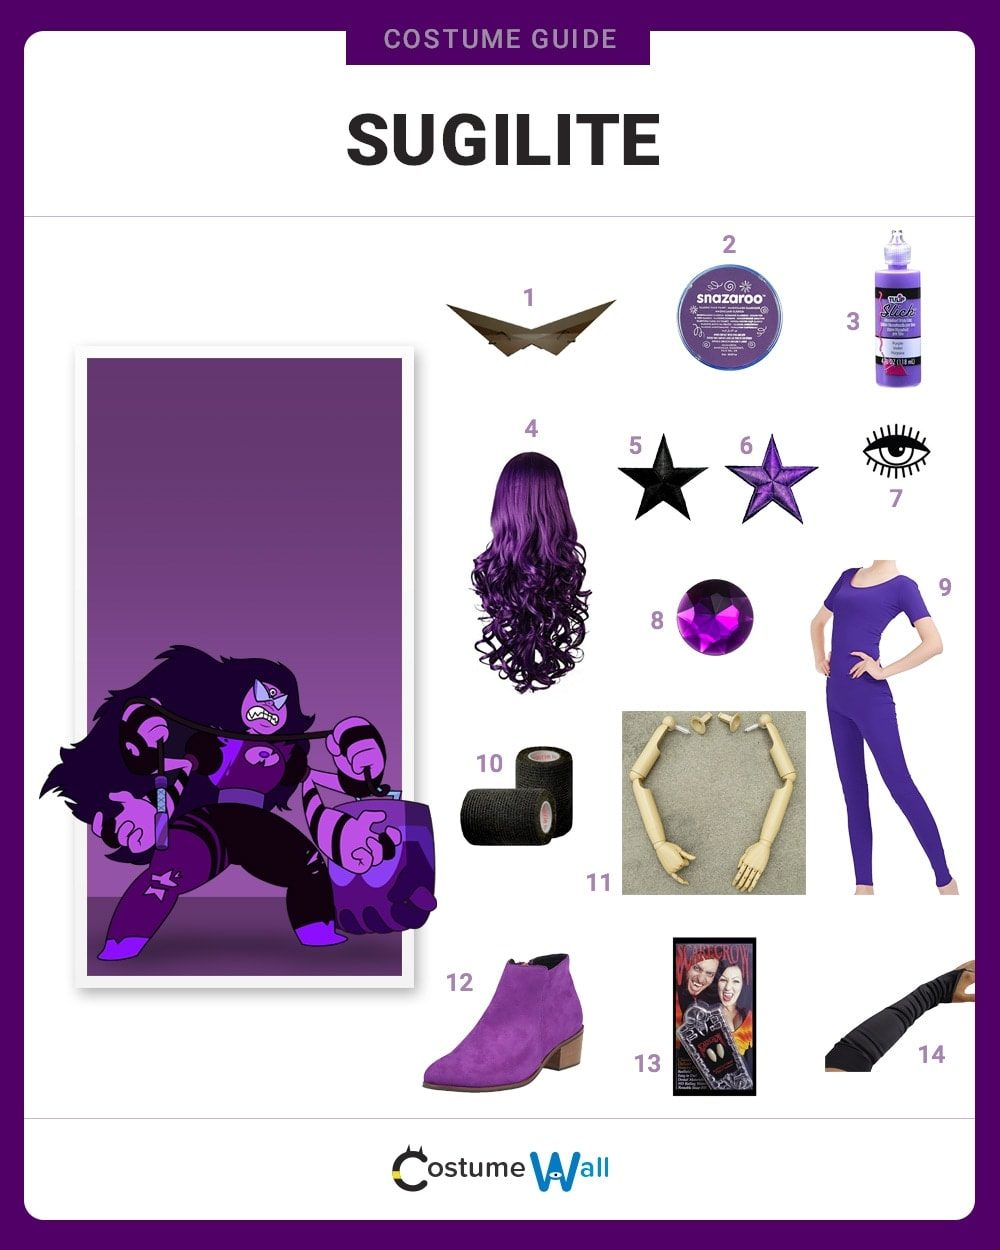 Sugilite Costume Guide